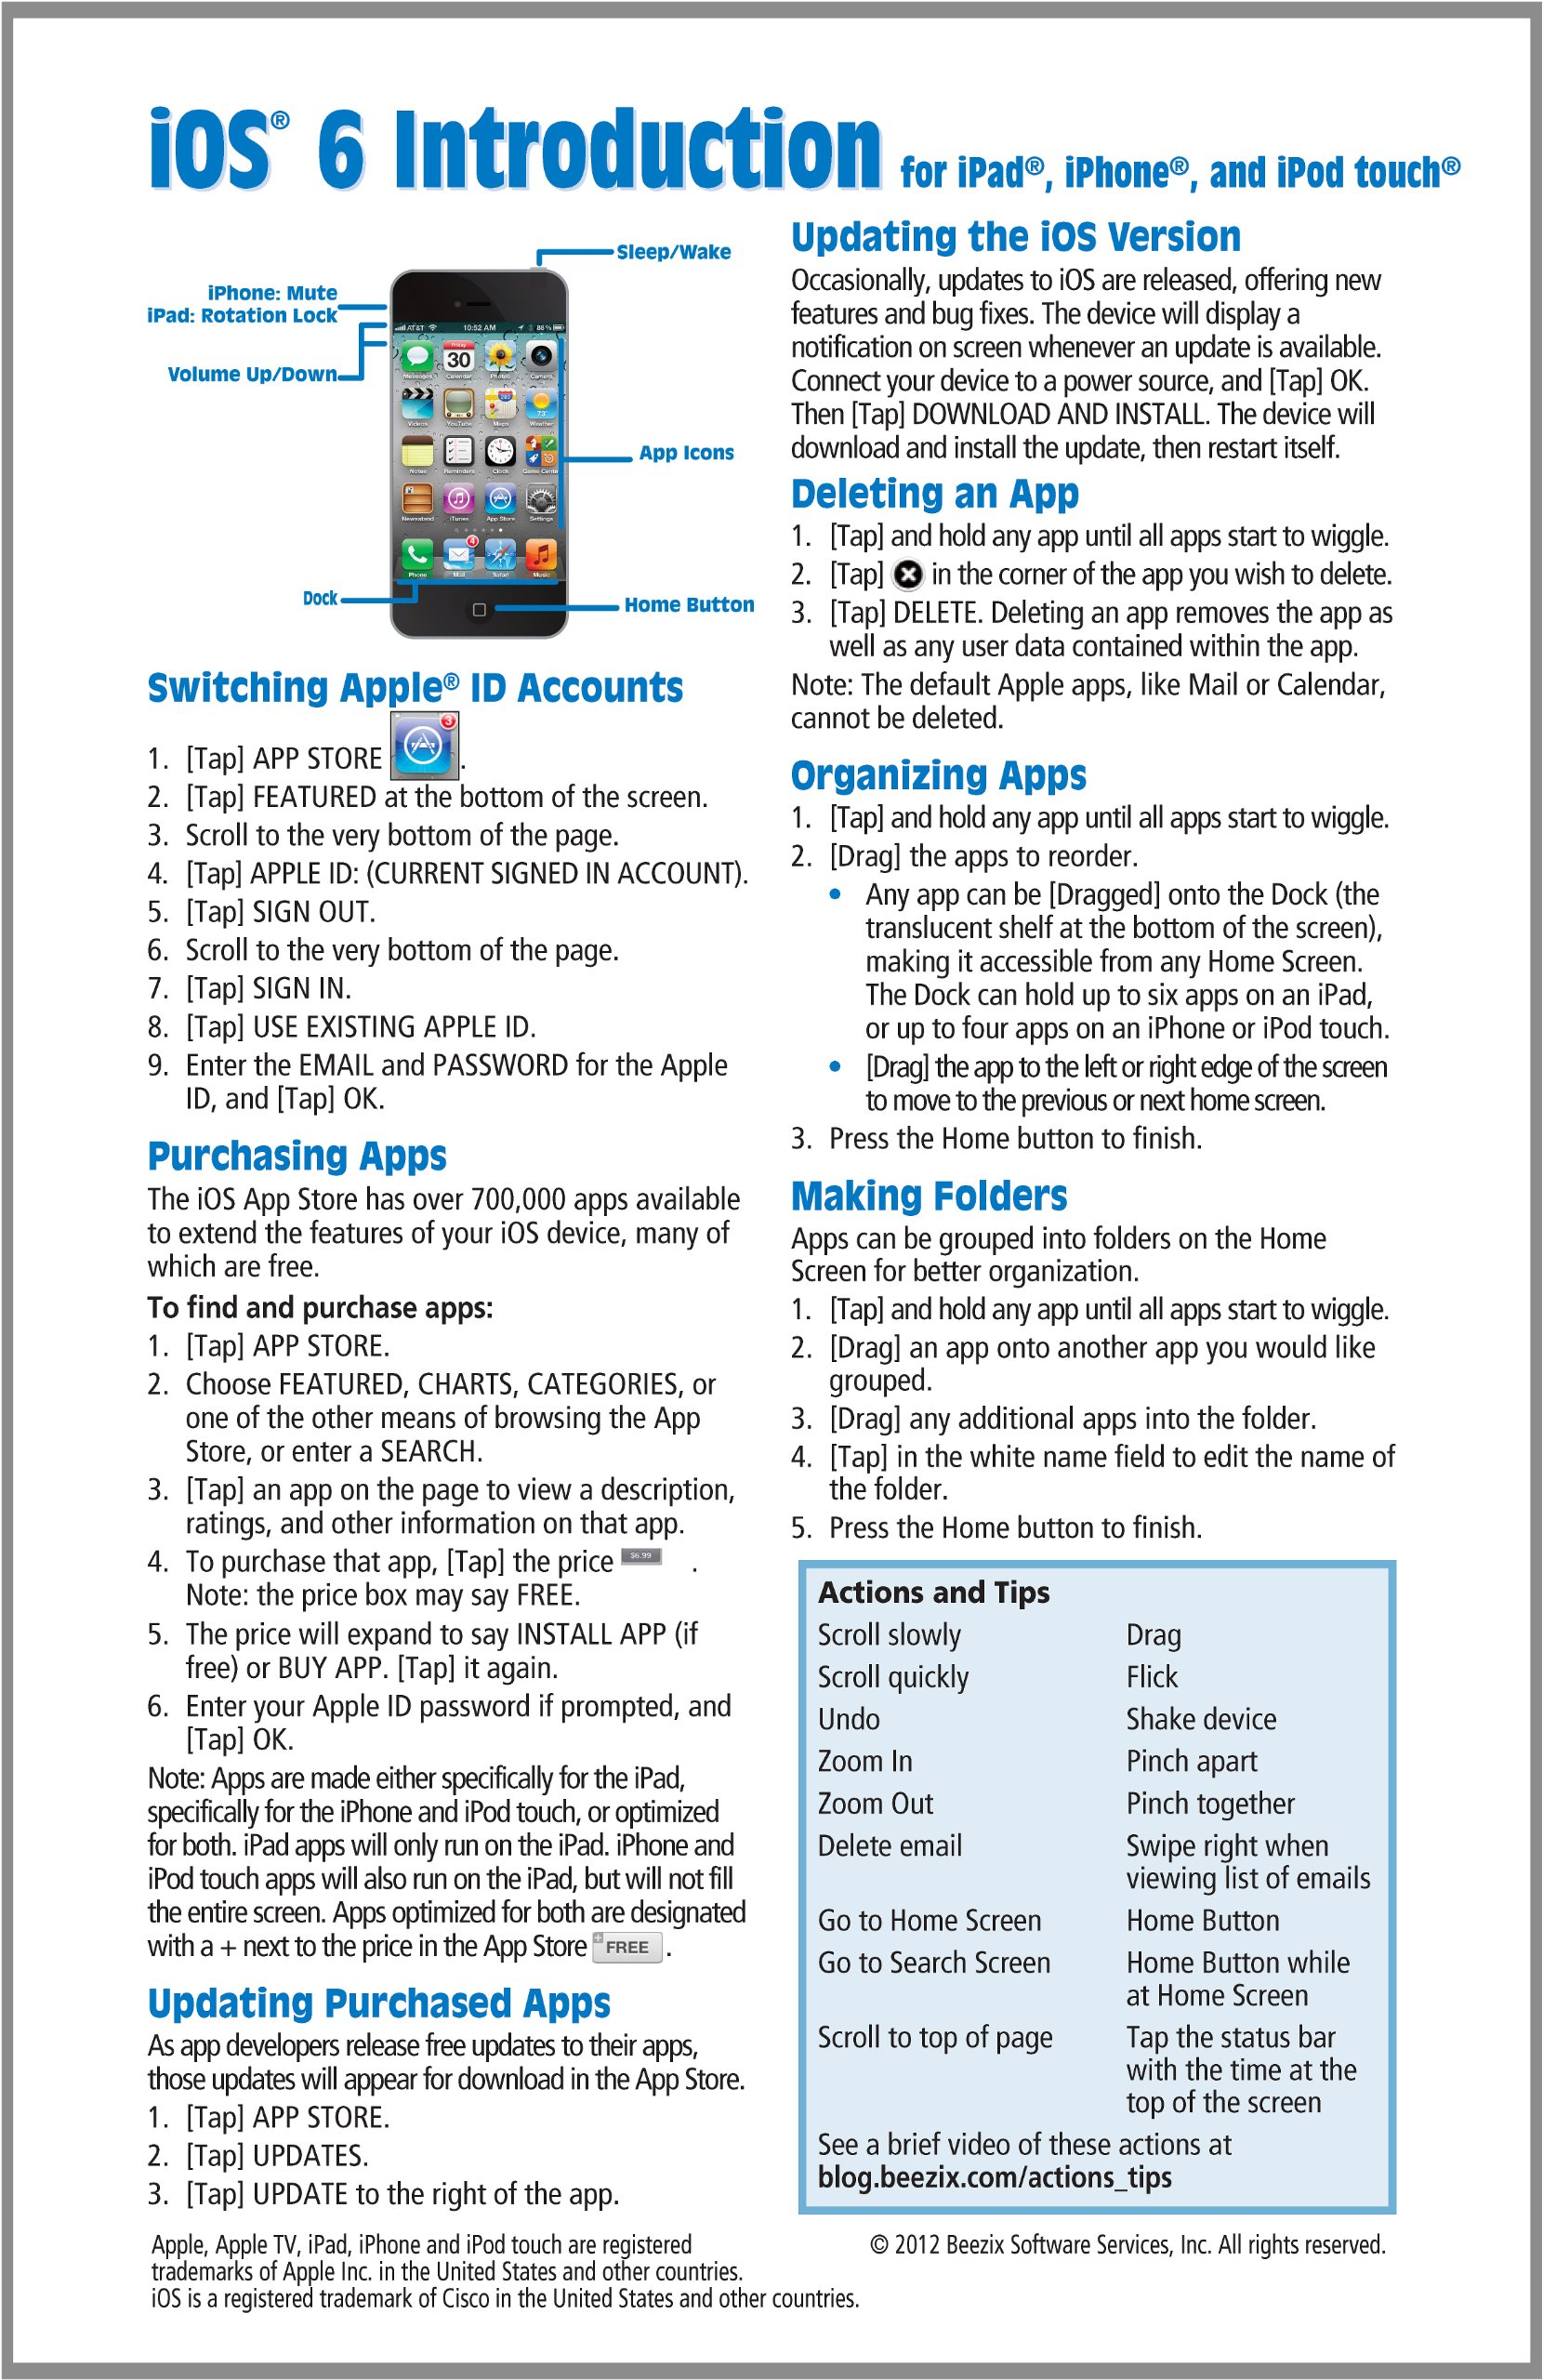 Ios 6 Introduction Quick Reference Guide For Ipad Iphone And Ipod